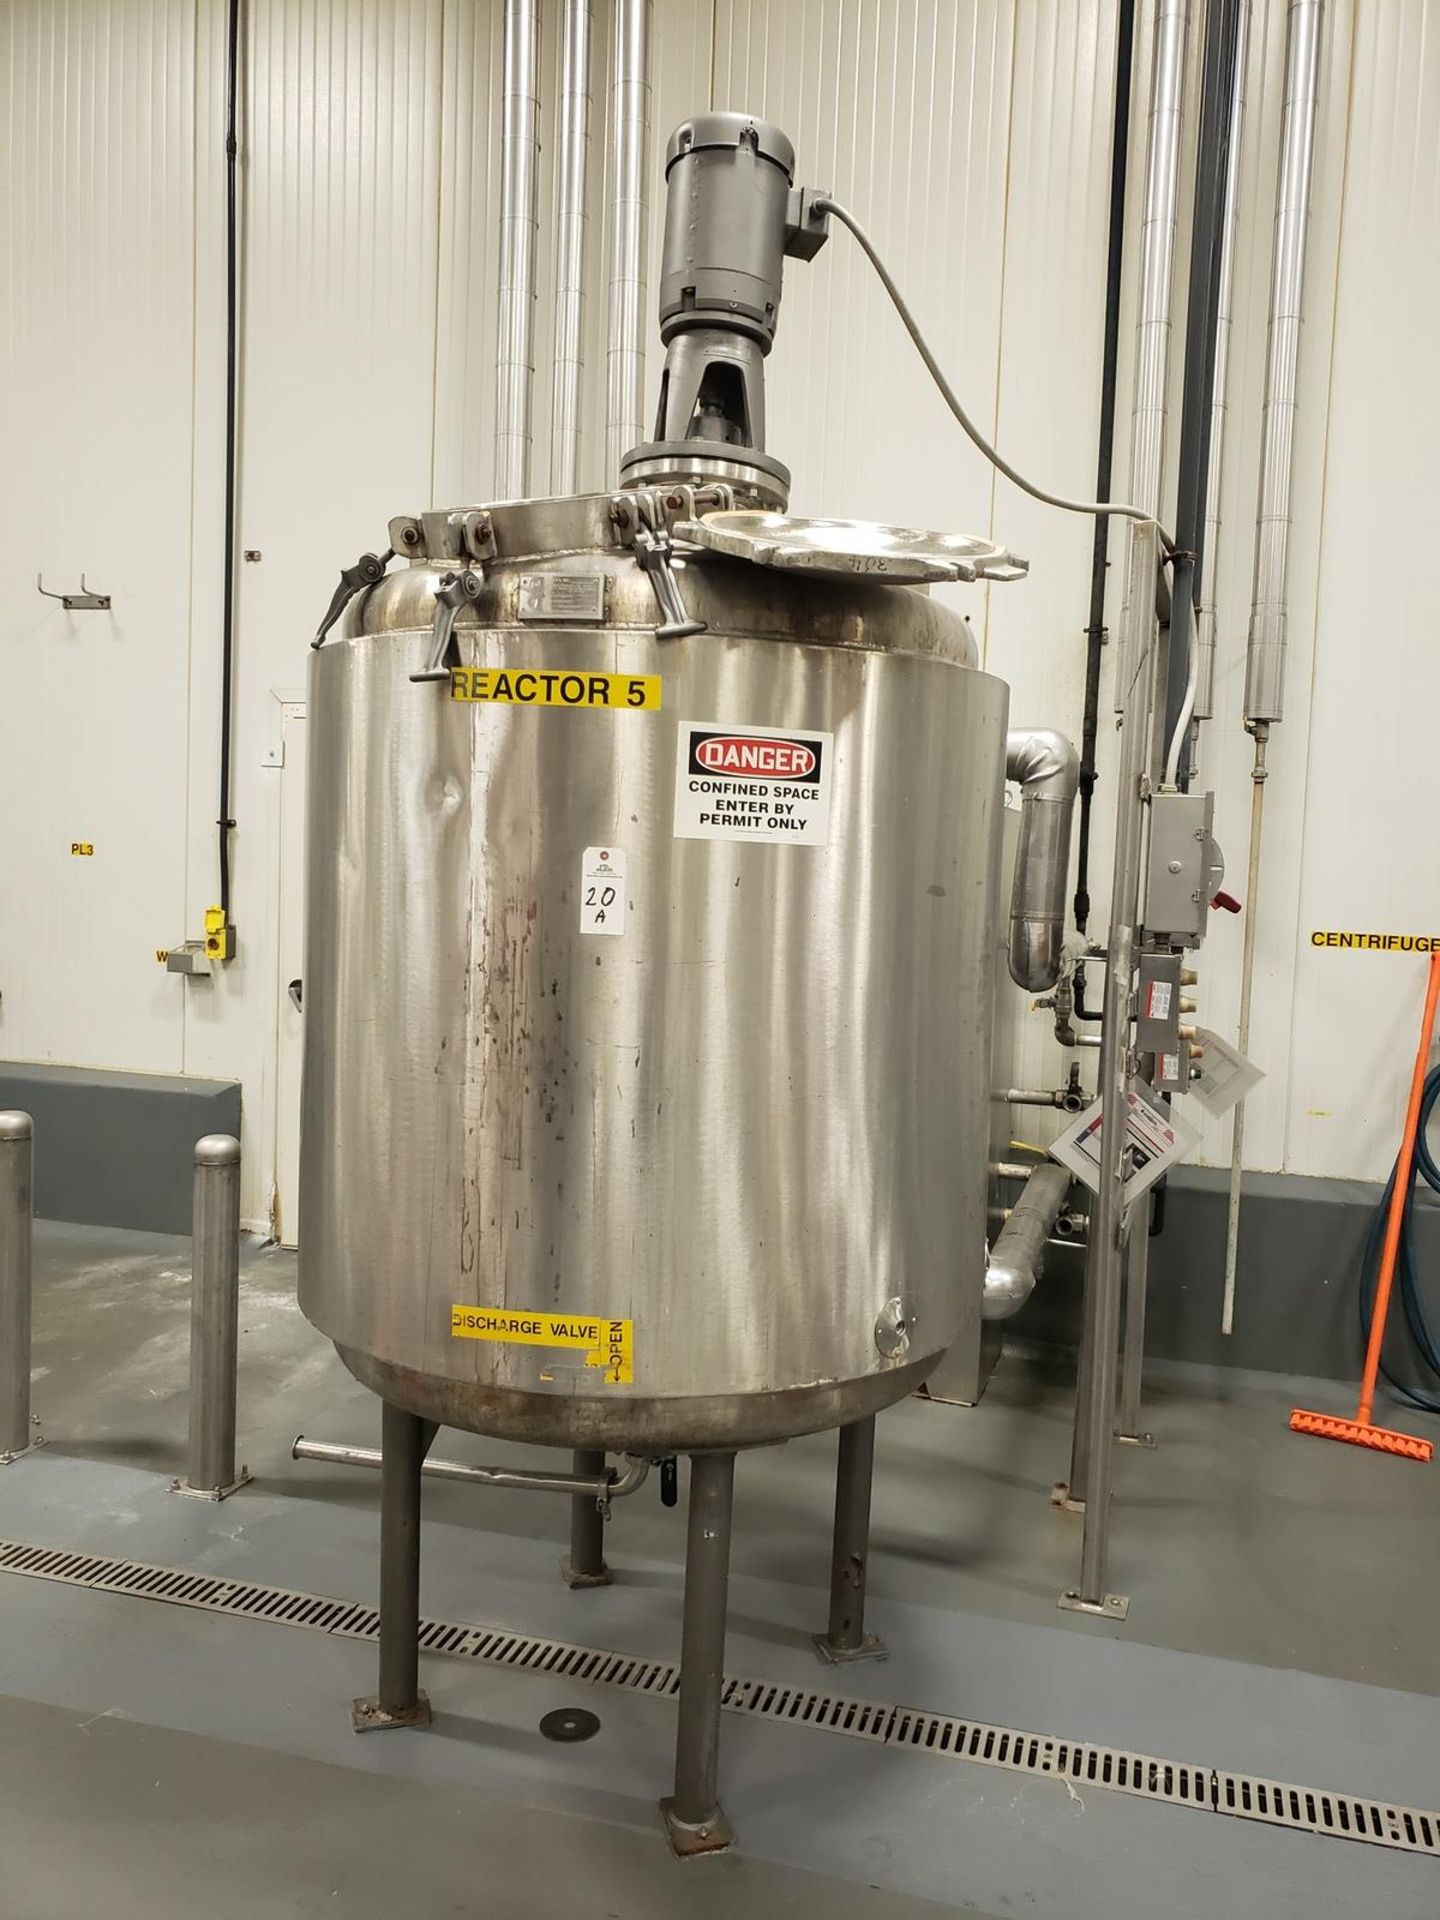 Lot 20A - Reactor - Ross Metal Fabrication 450 Gallon Jacketed, Agitated Reactor Ta - Loc: NJ   Rig Fee: $750